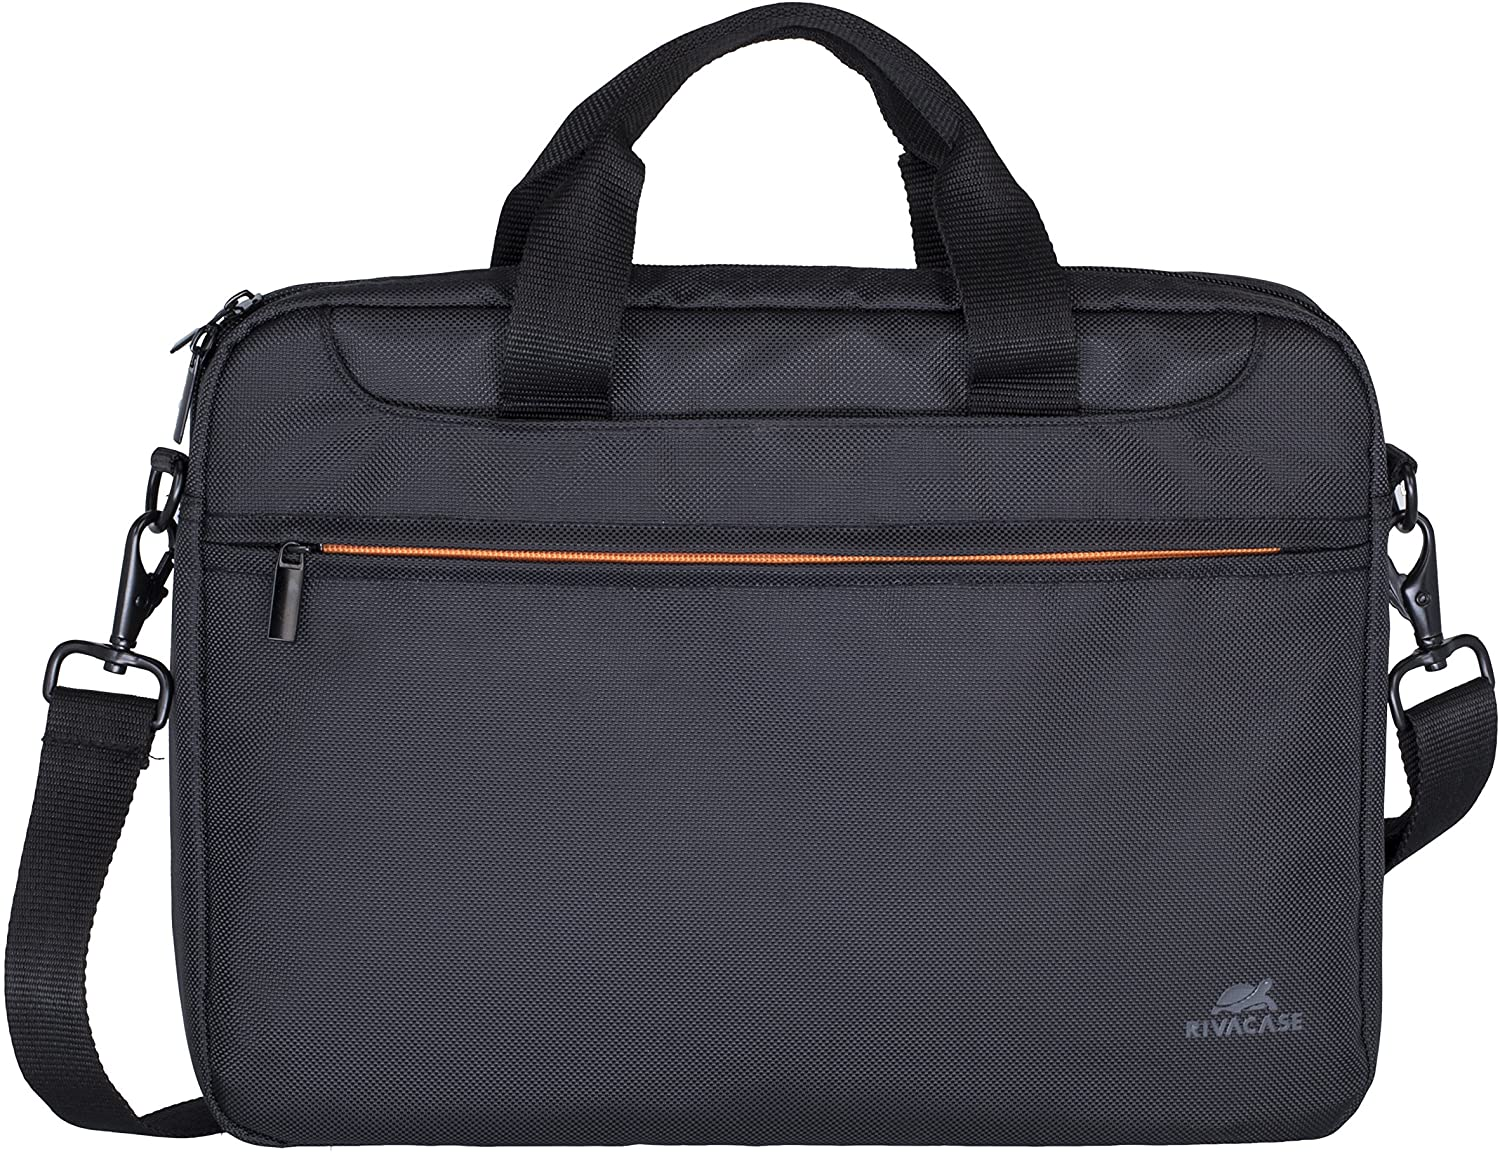 Rivacase 15.5 inch Laptop Bag with Separate Document Compartment - Black